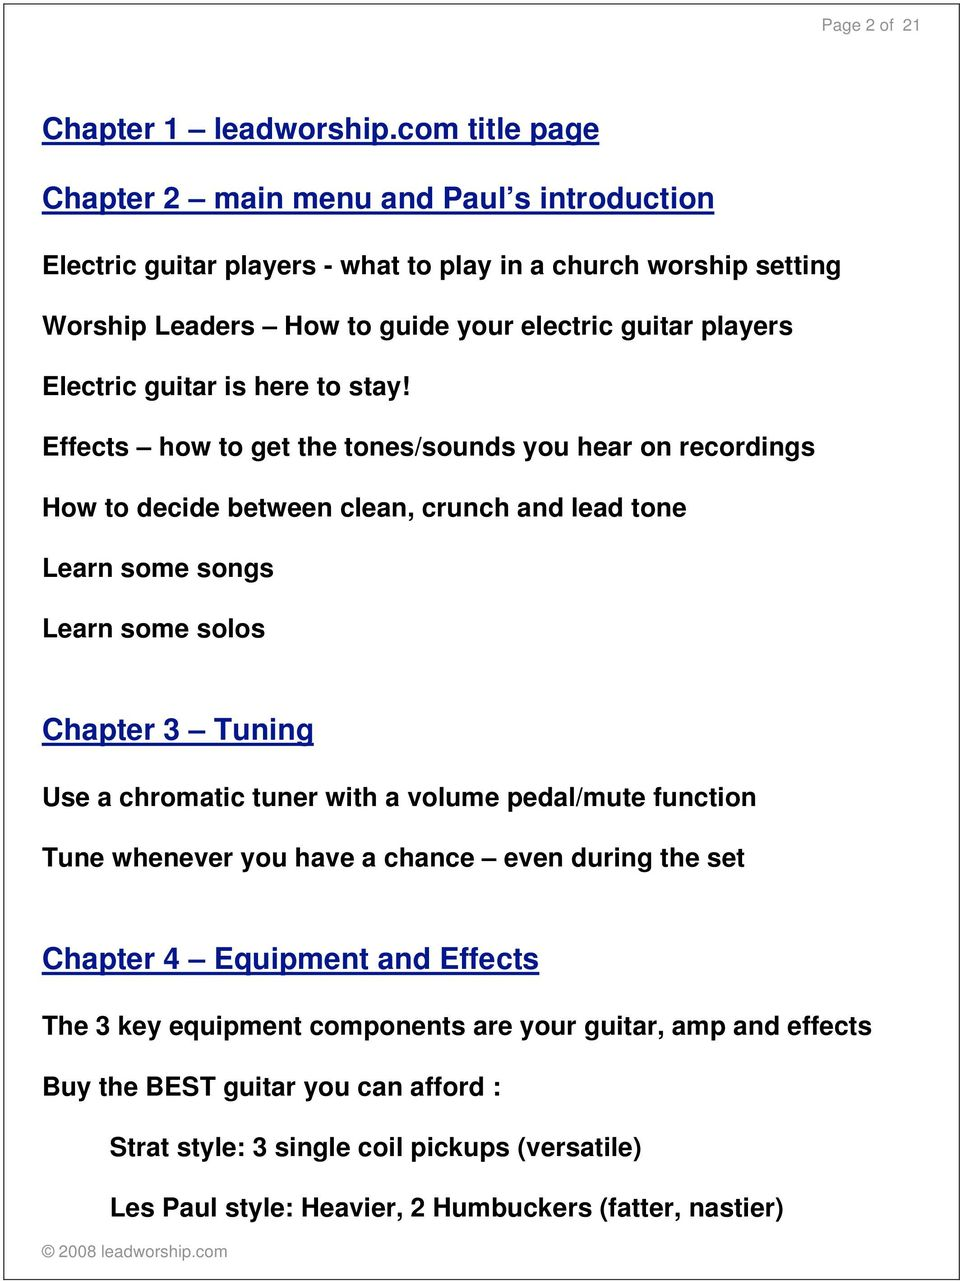 Companion Workbook To The Bonus Section With Glenn Pearce Pdf Tips For Buying An Electric Guitar Guitars 101 Your Bible Is Here Stay